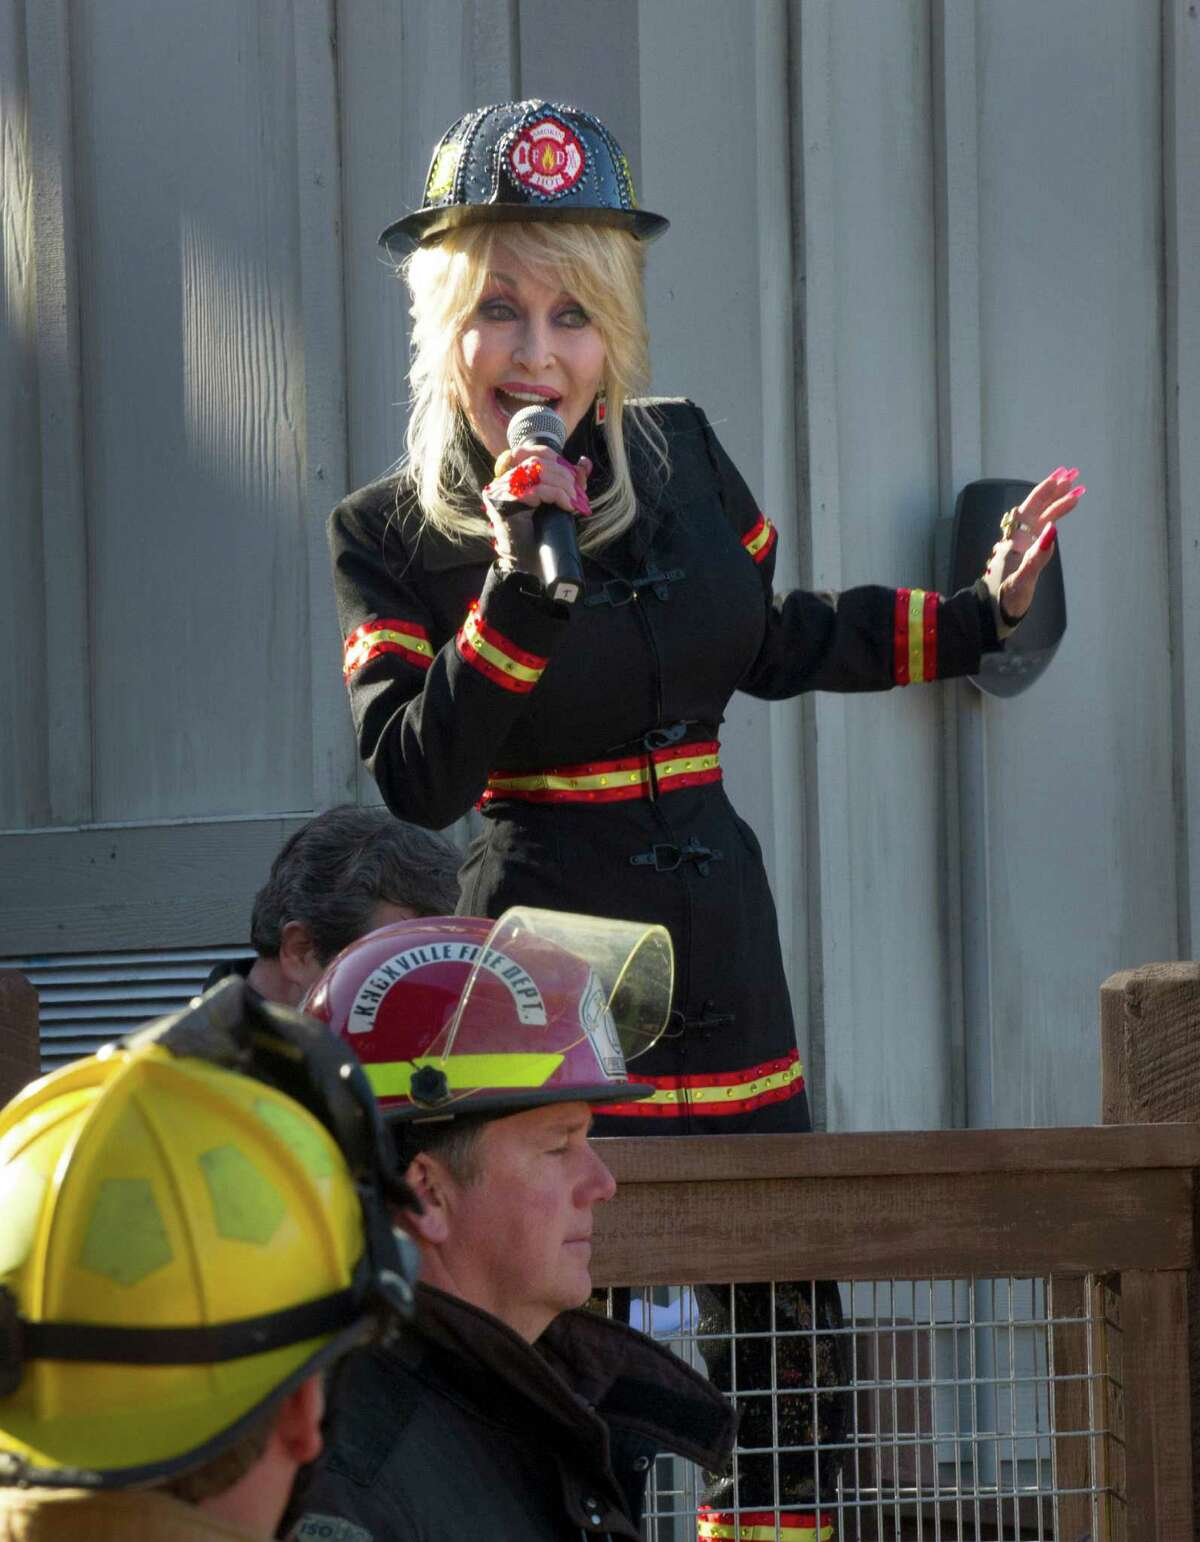 Dolly Parton introduces the new FireChaser Express roller coaster to kick off the opening of Dollywood's 29th season Friday, March 21, 2014, in Pigeon Forge, Tenn. The $15 million FireChaser Express is a dual launch roller coaster designed to look like firefighting trains used in the Smoky Mountains in the 1940s.